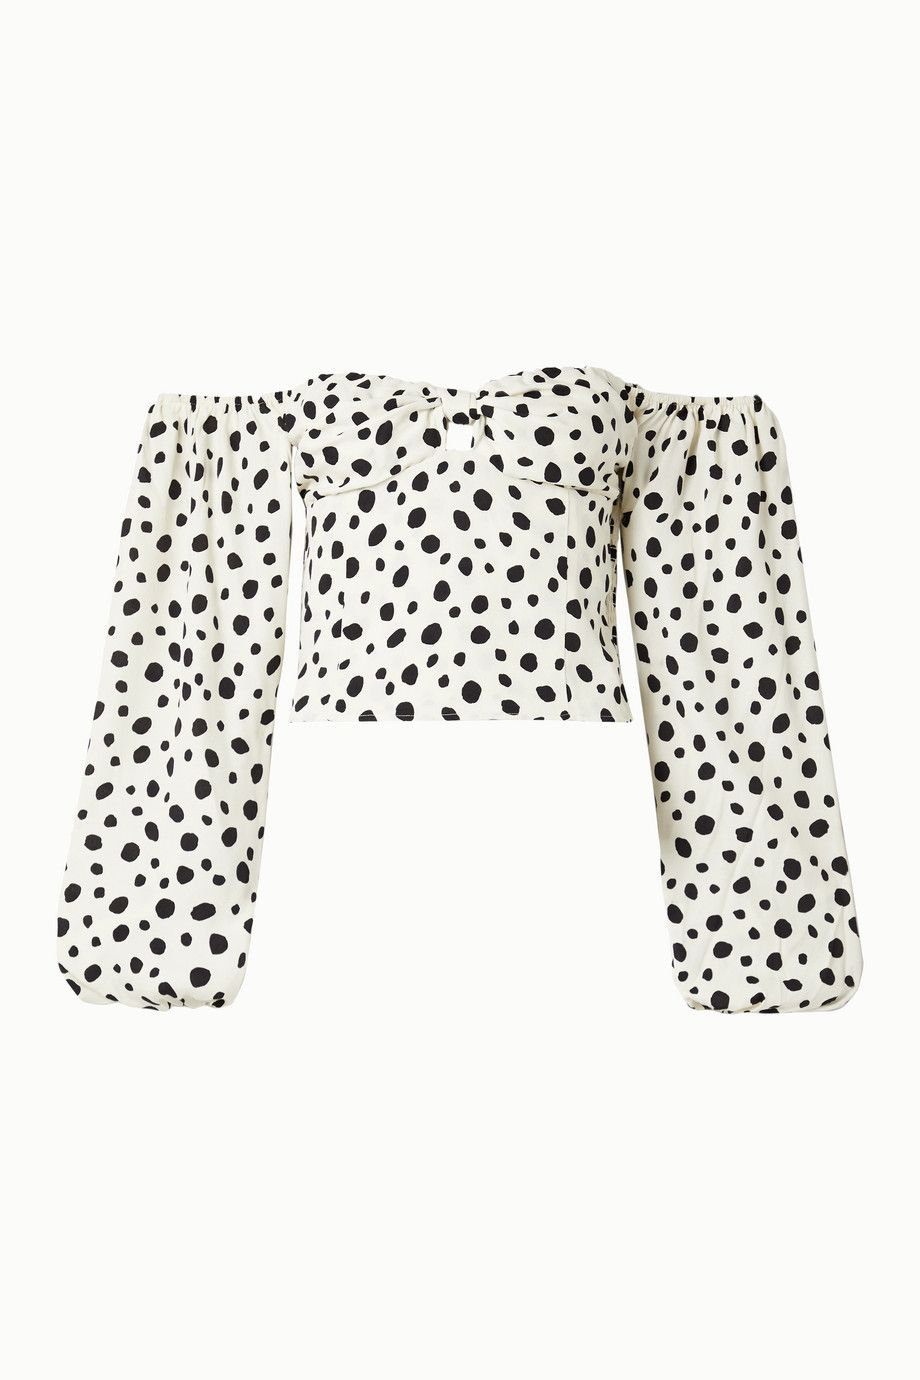 reformation-simi-off-the-shoulder-shirred-polka-dot-crepe-de-chine-blouse